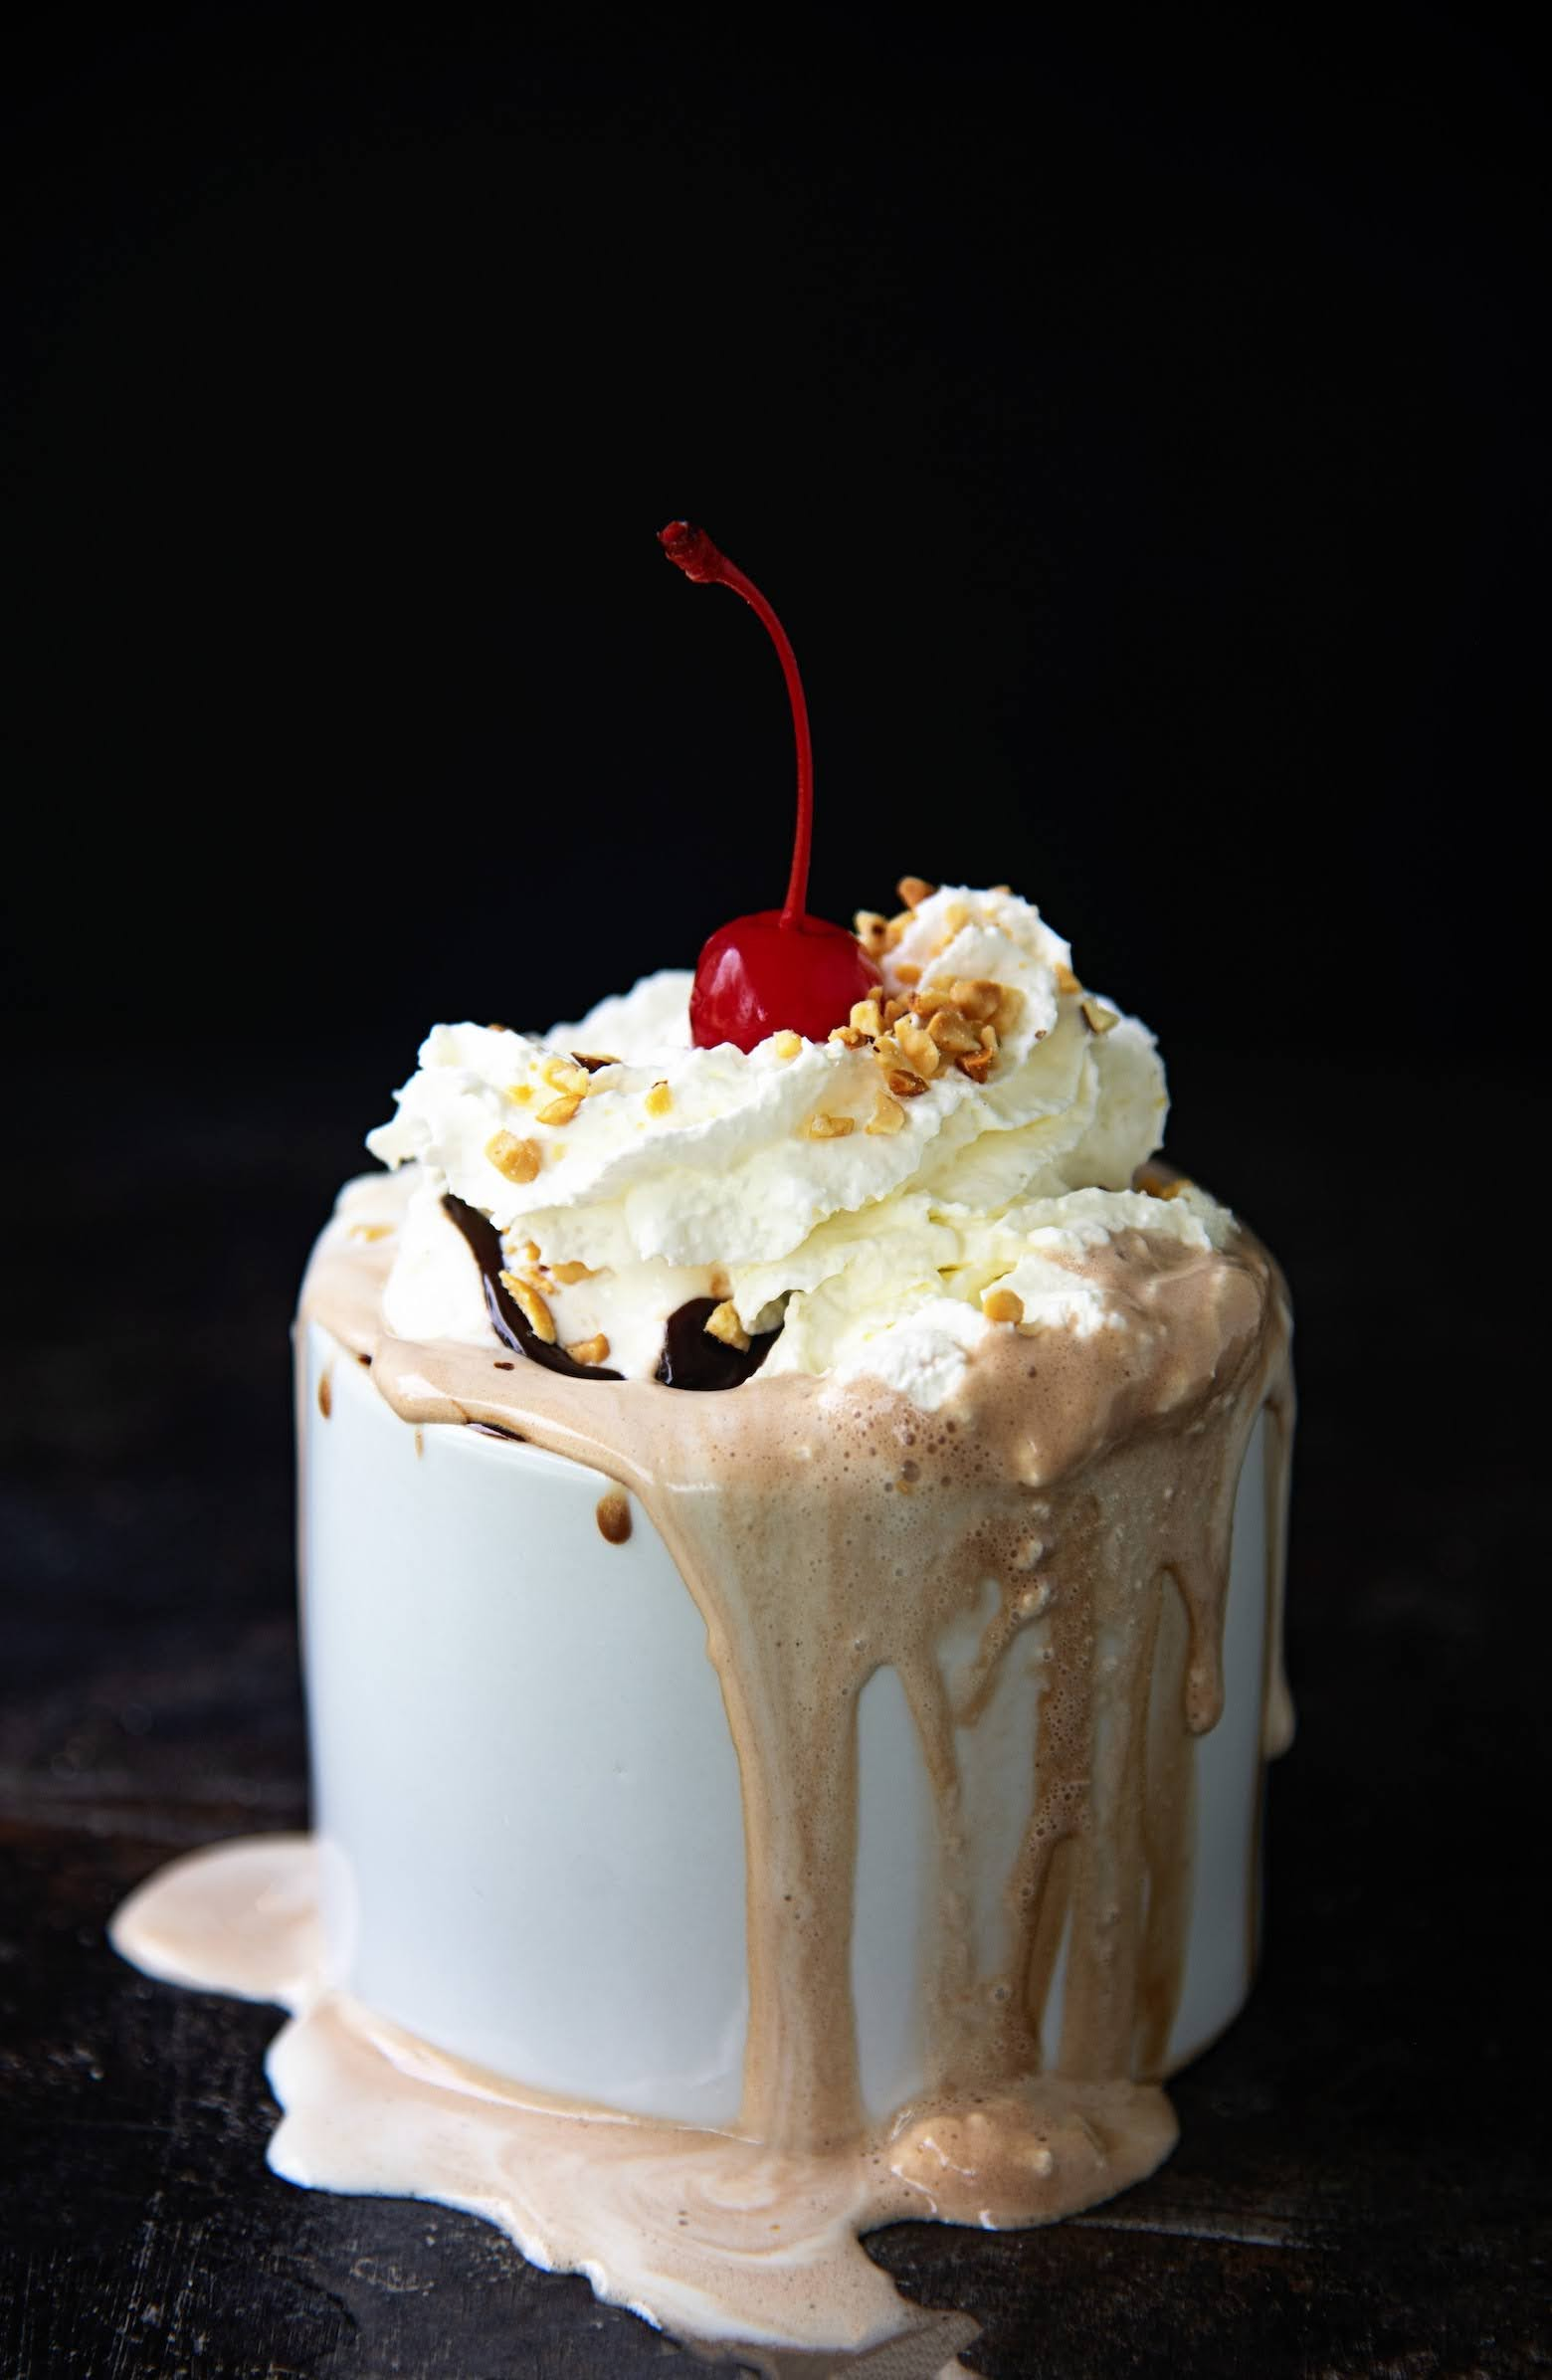 Hot Fudge Sundae Hot Chocolate | Photo Courtesy of Sweet ReciPEAS